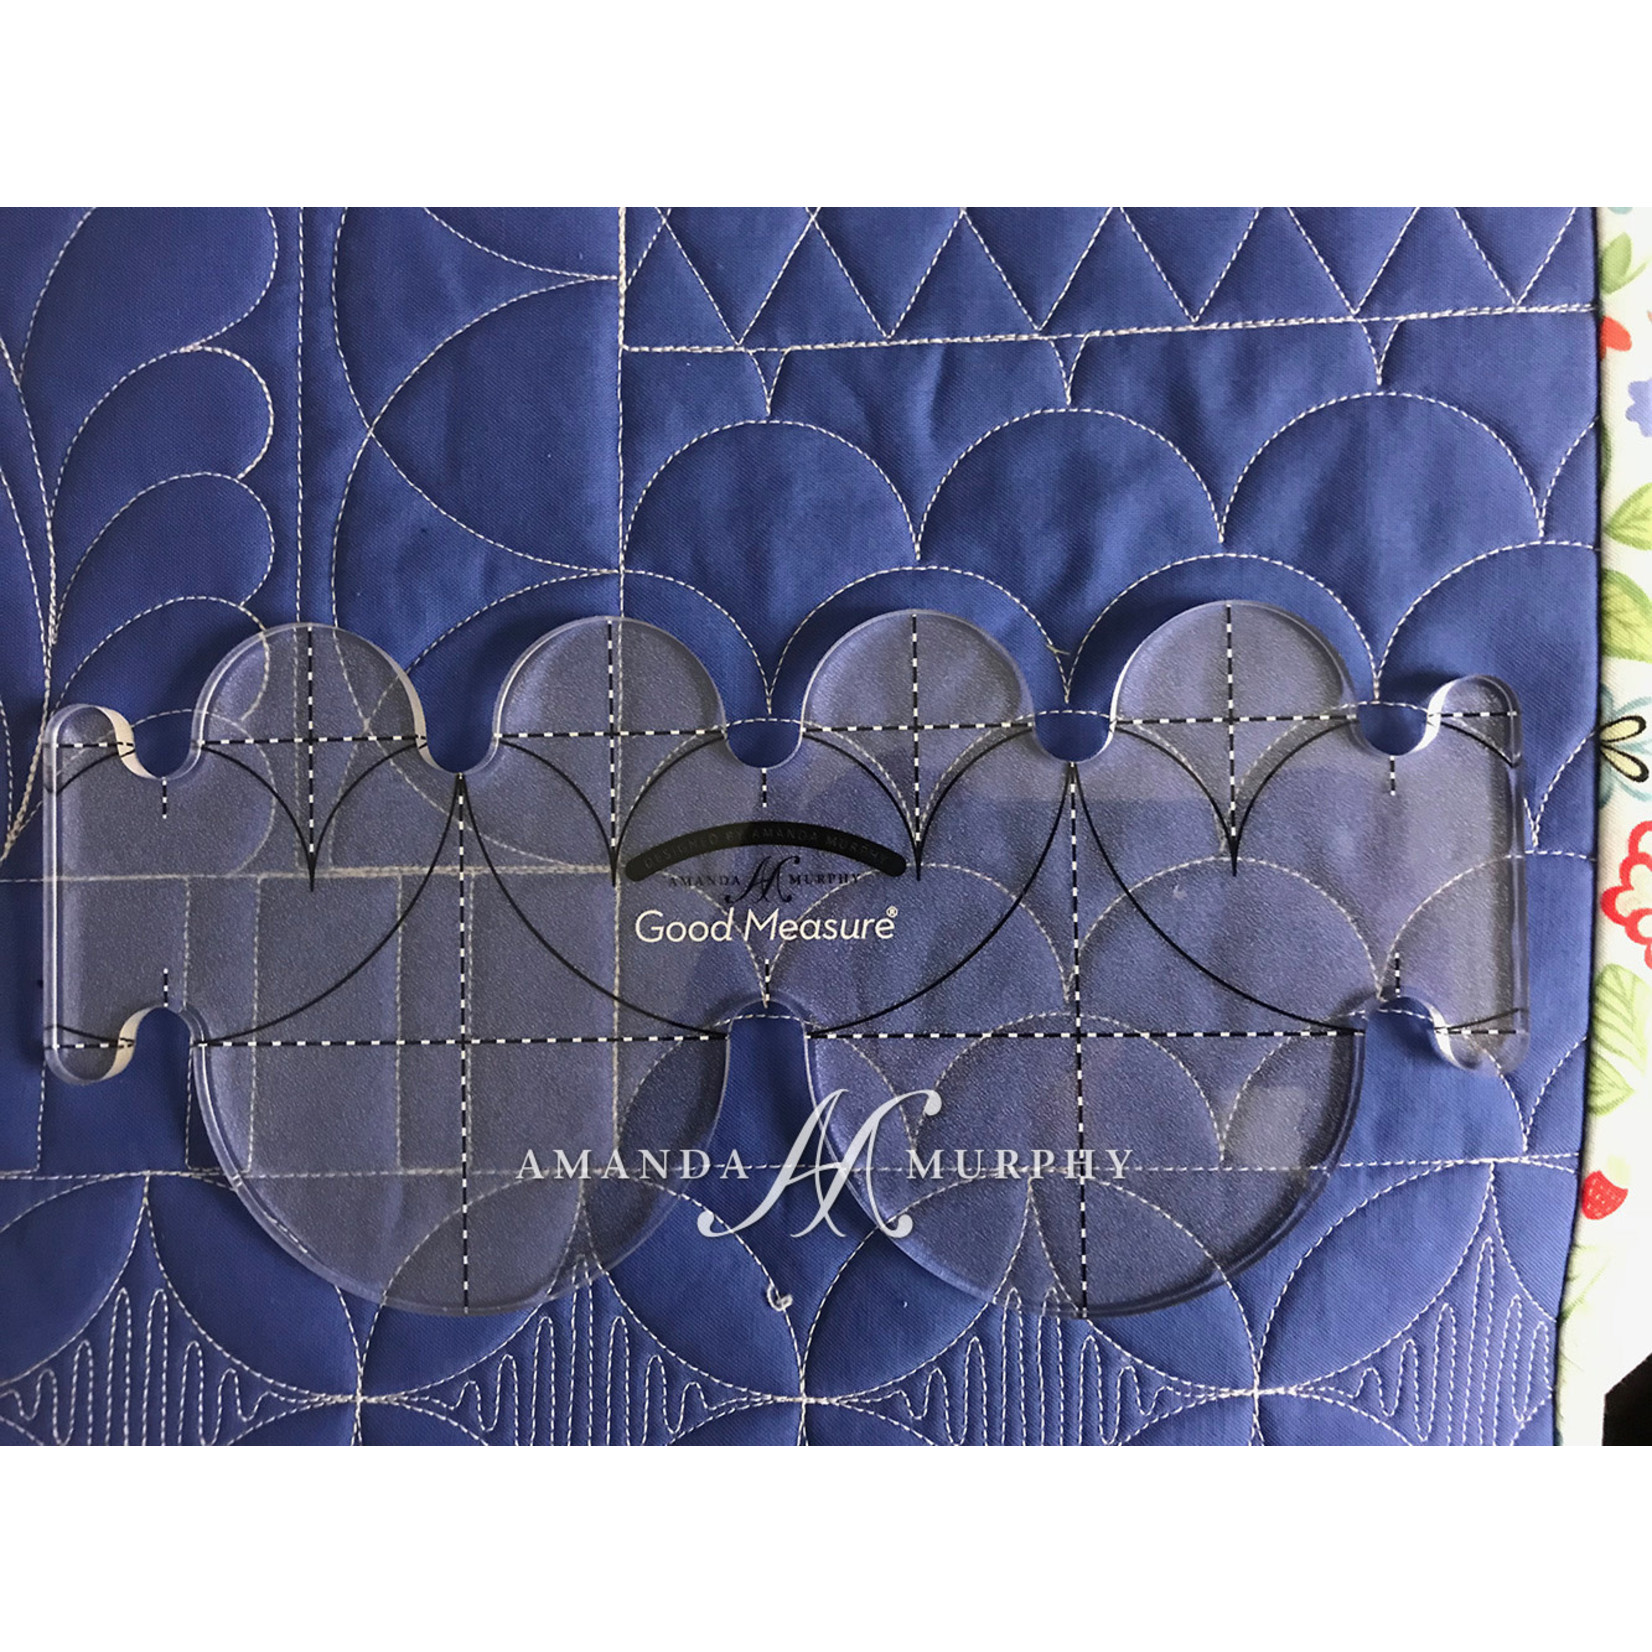 Good Measure QuiltLiniaal - Every Clamshell - set of 2 - Low Shank